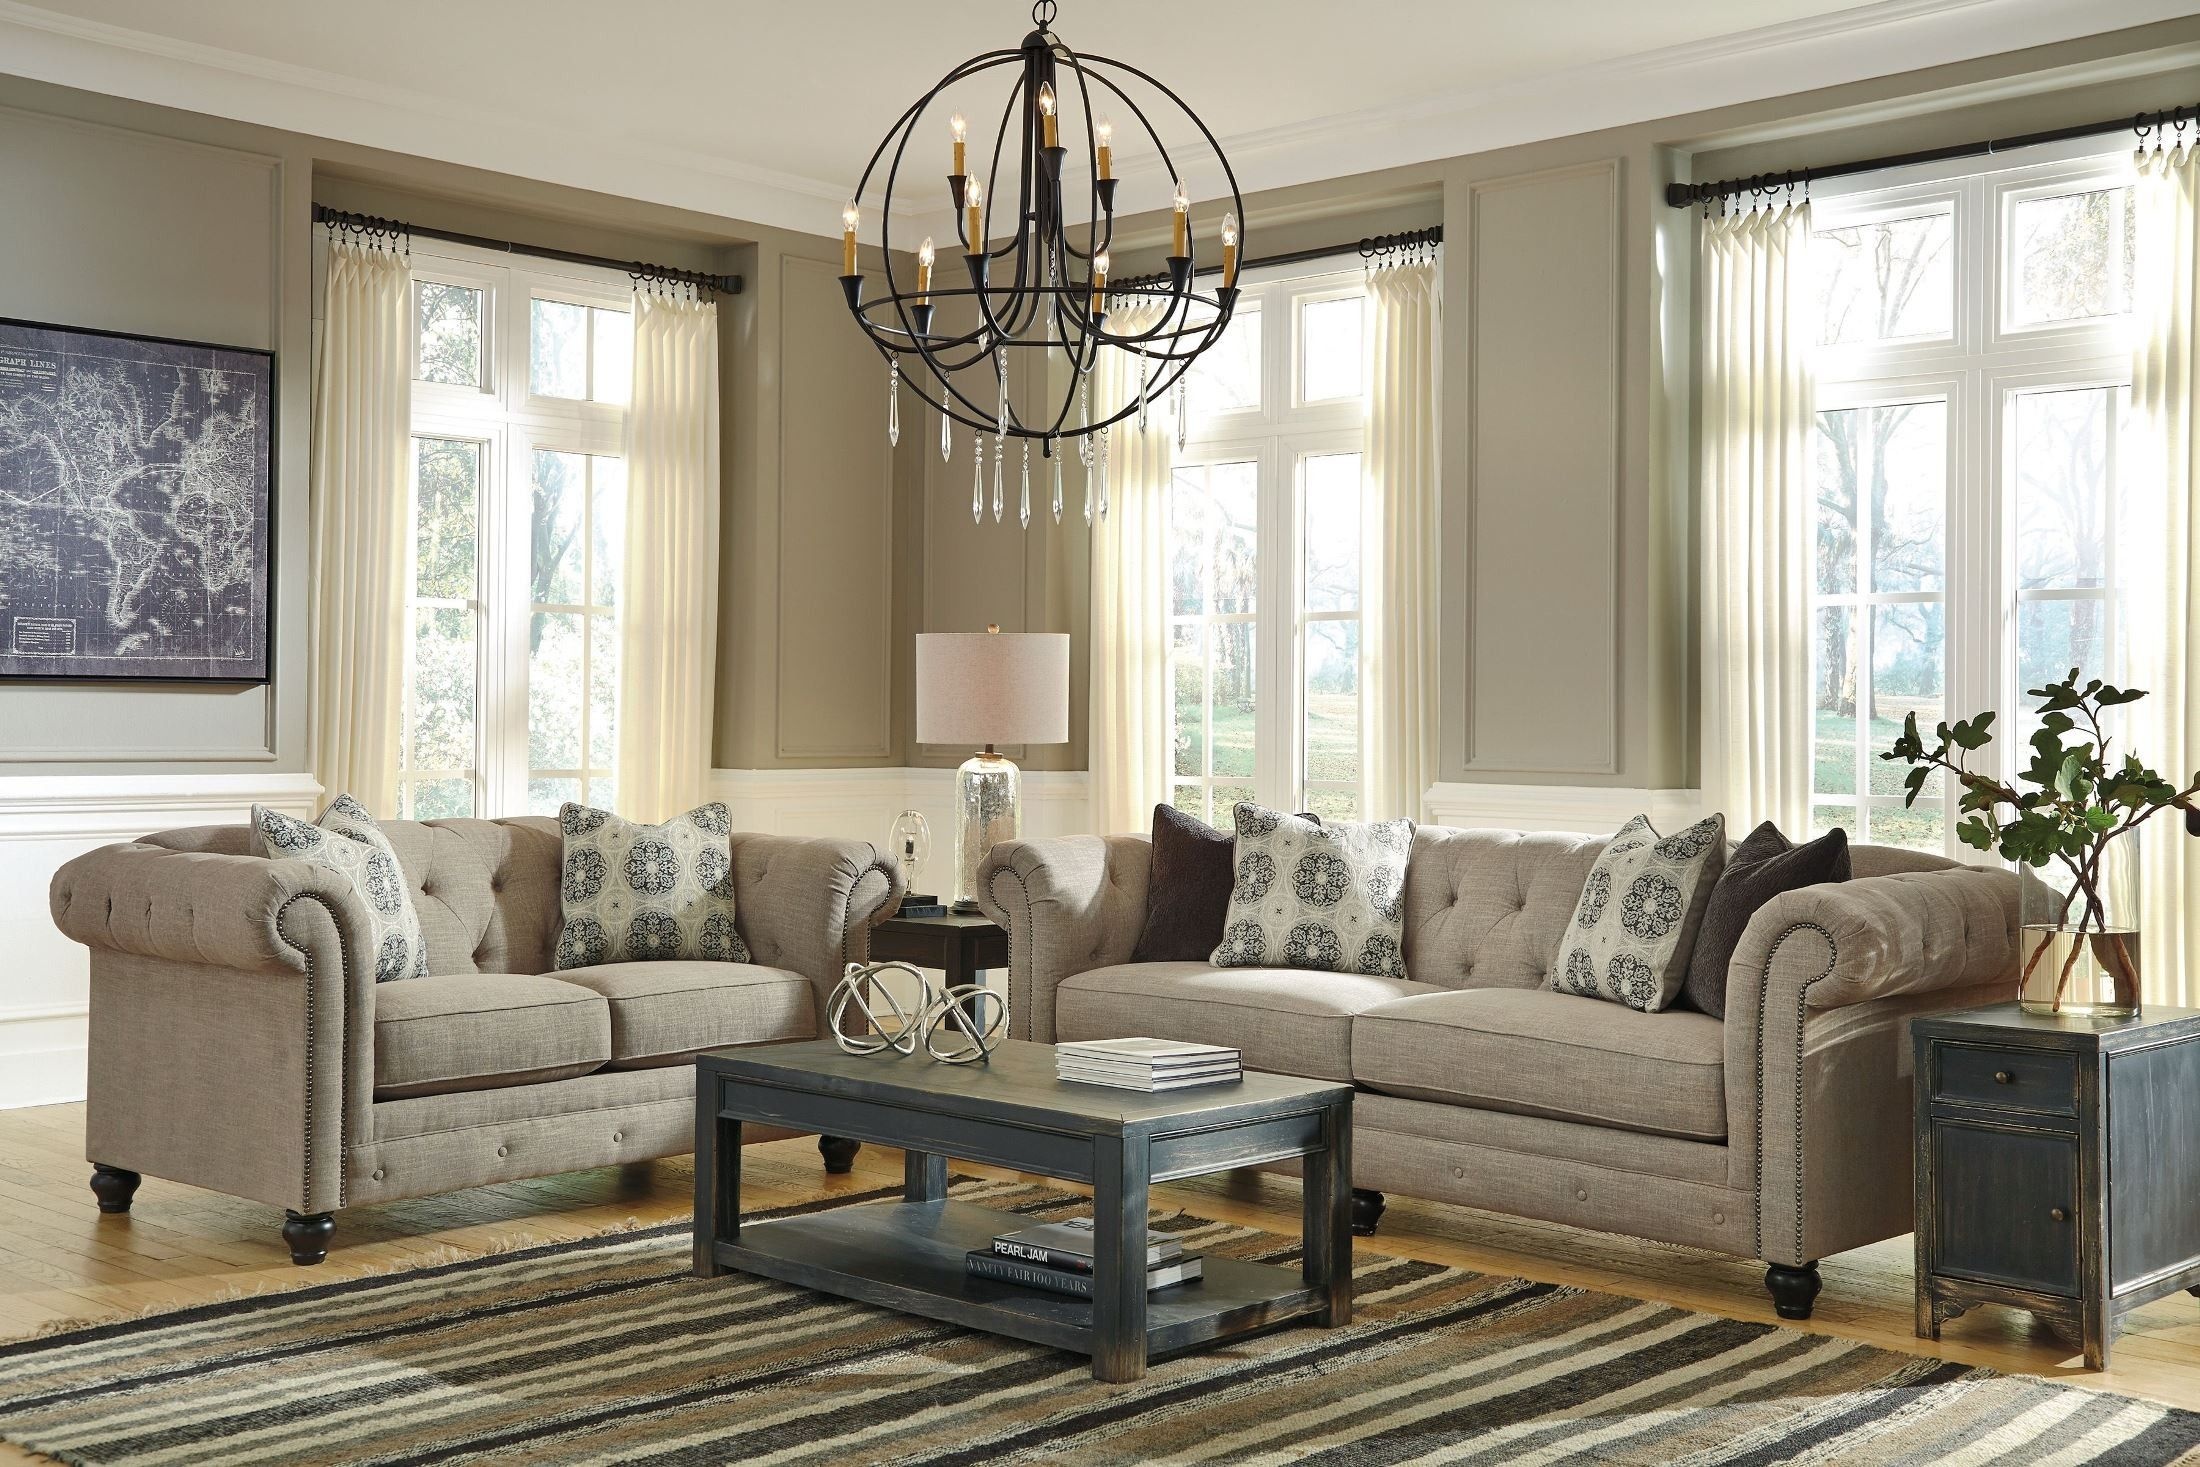 living room sofa azlyn loveseat by ashley furniture at kensington furniture this is the. Black Bedroom Furniture Sets. Home Design Ideas